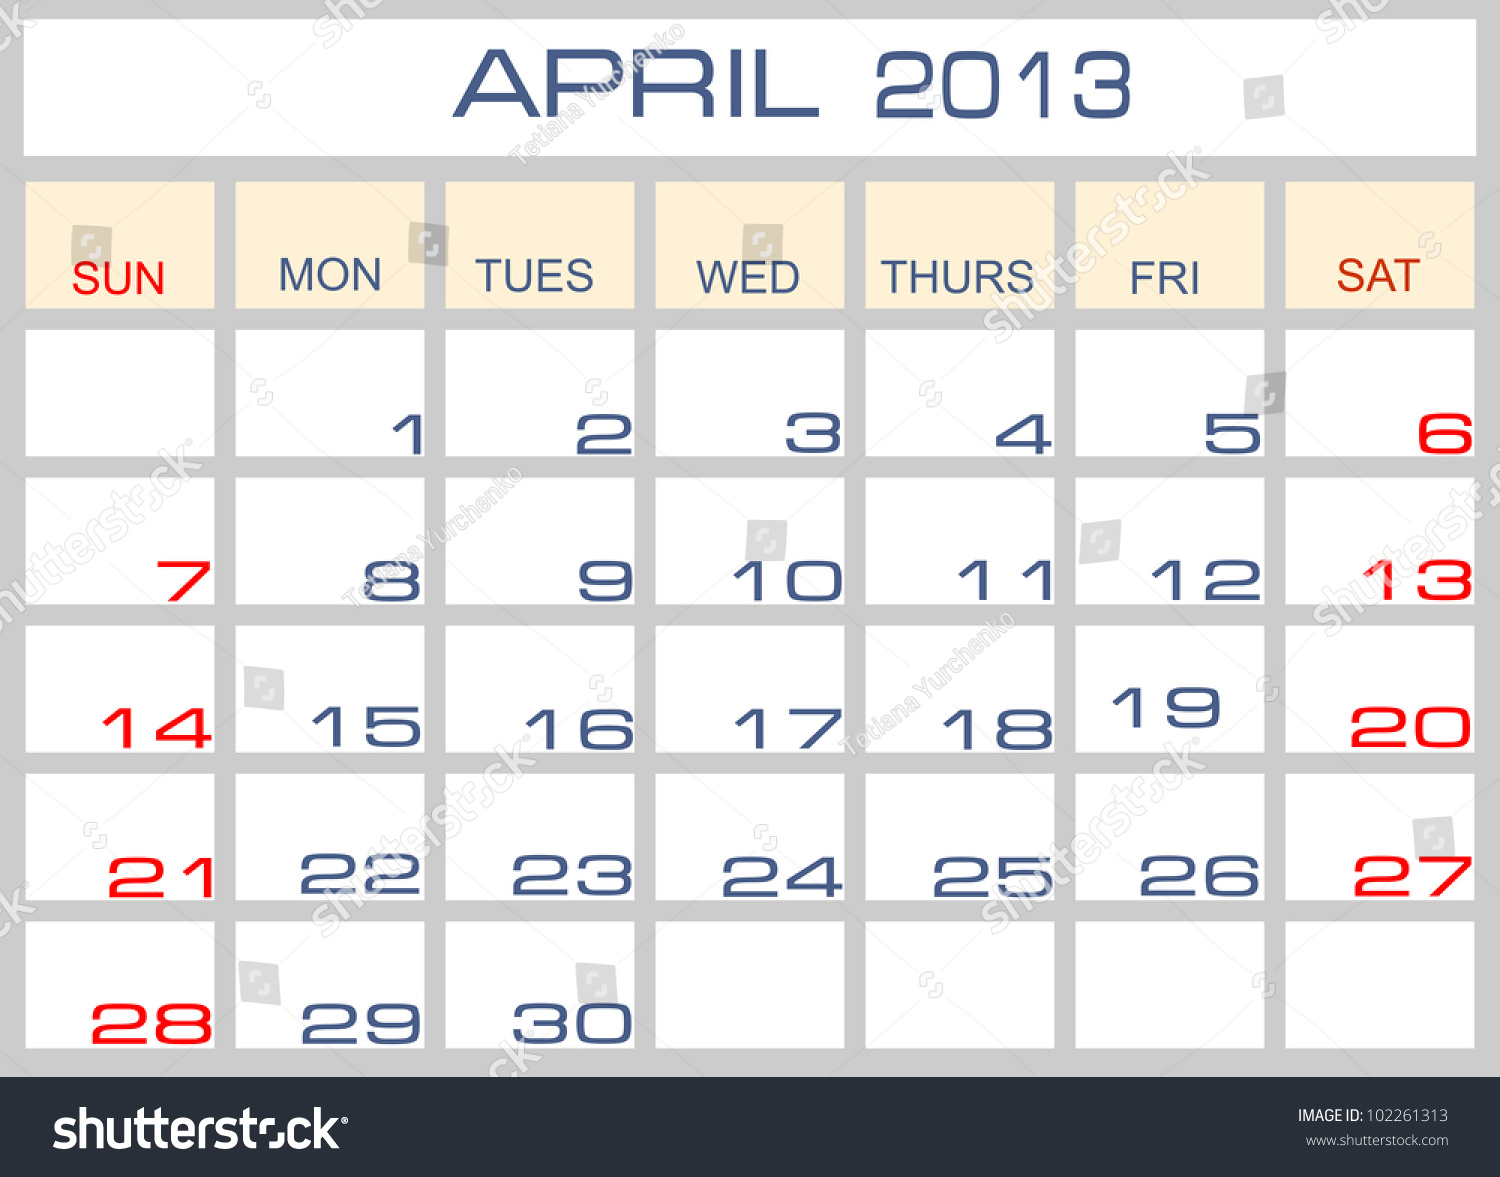 Calendar April Vector : Vector calendar april  shutterstock